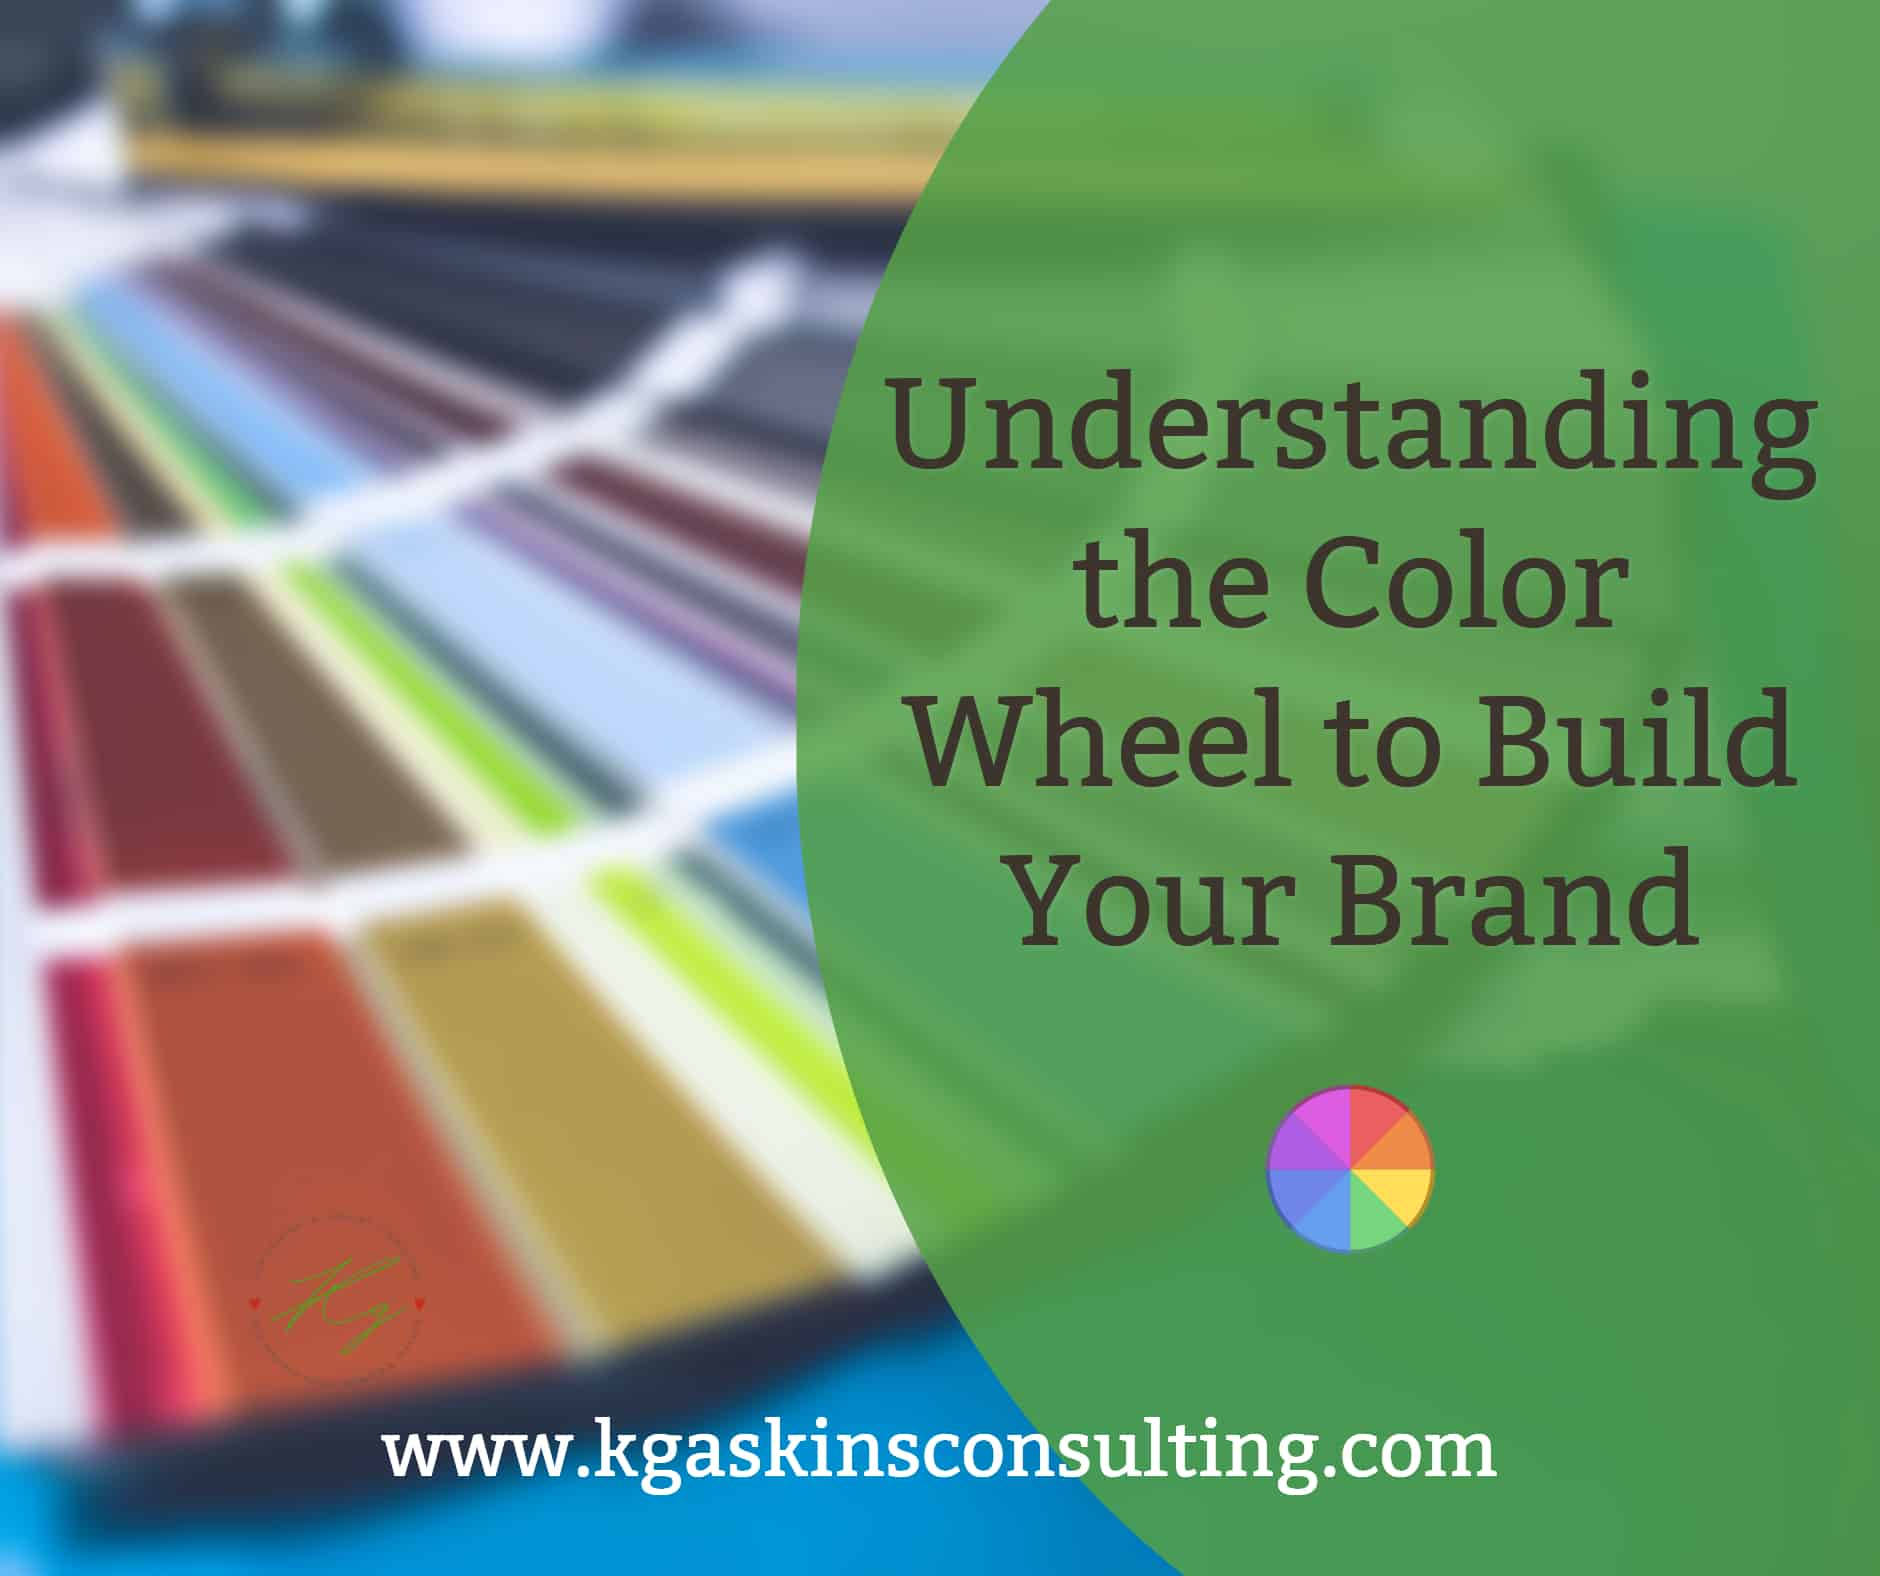 Colorwheelblogpost 1 K Gaskins Consulting